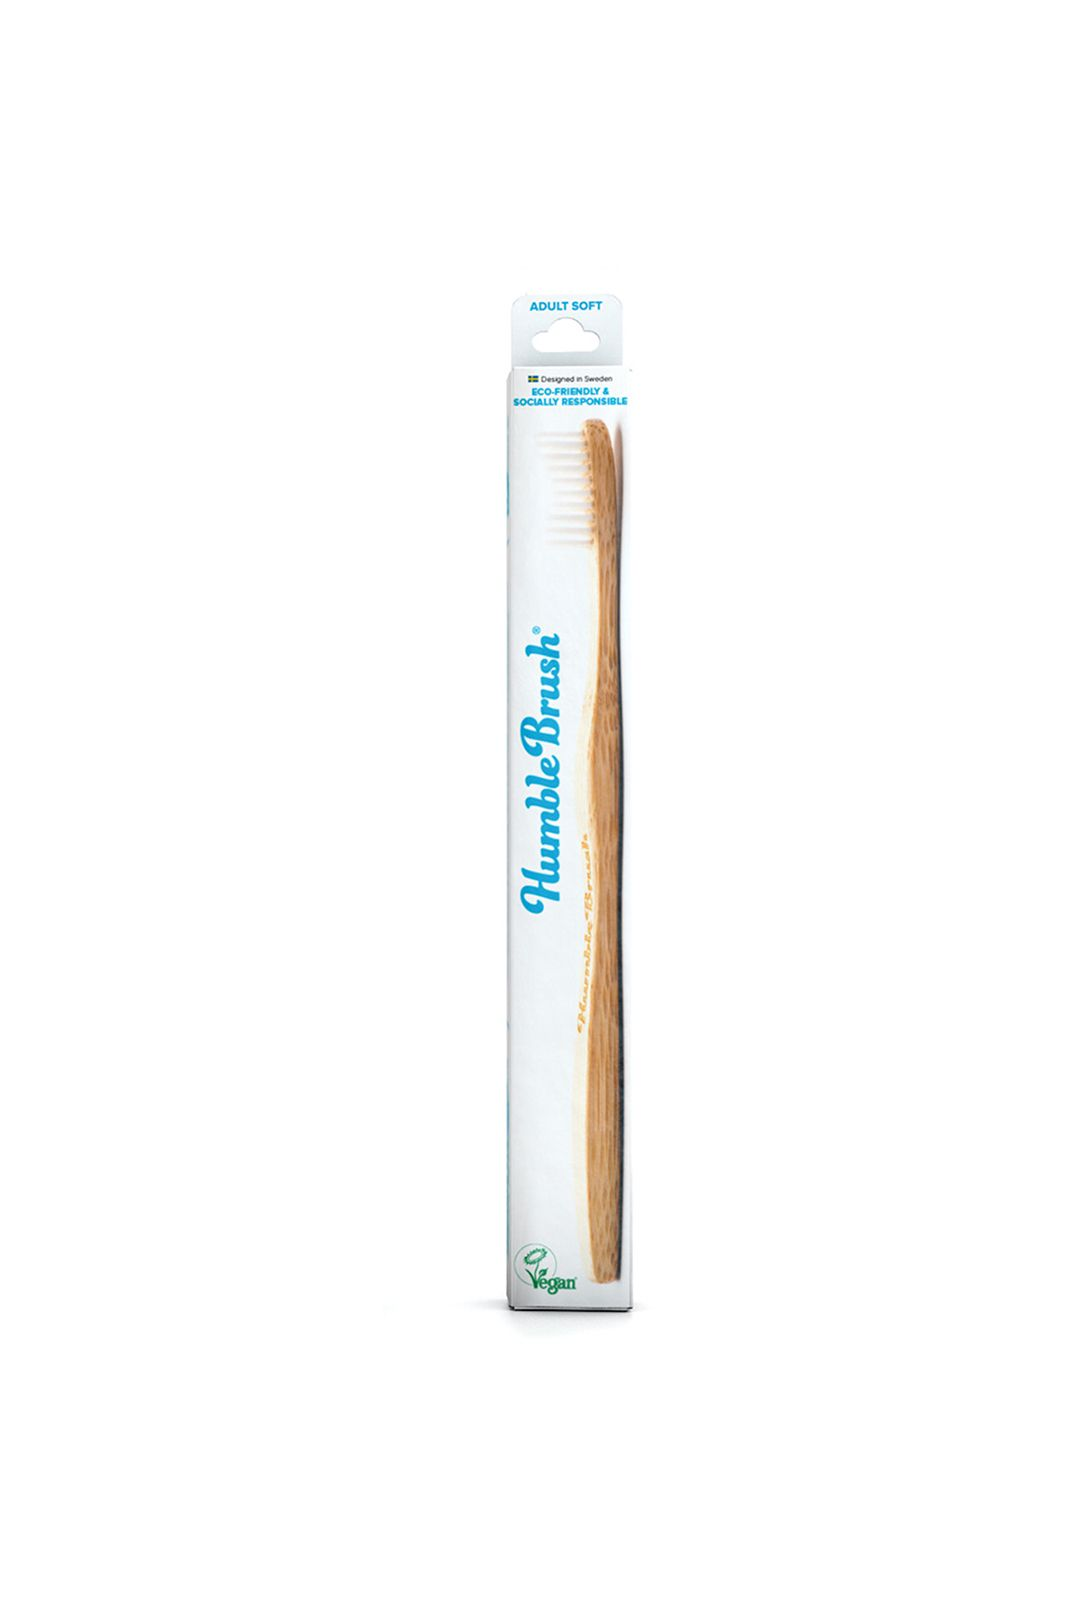 the-humble-co-toothbrush-bamboo-adult-soft-white